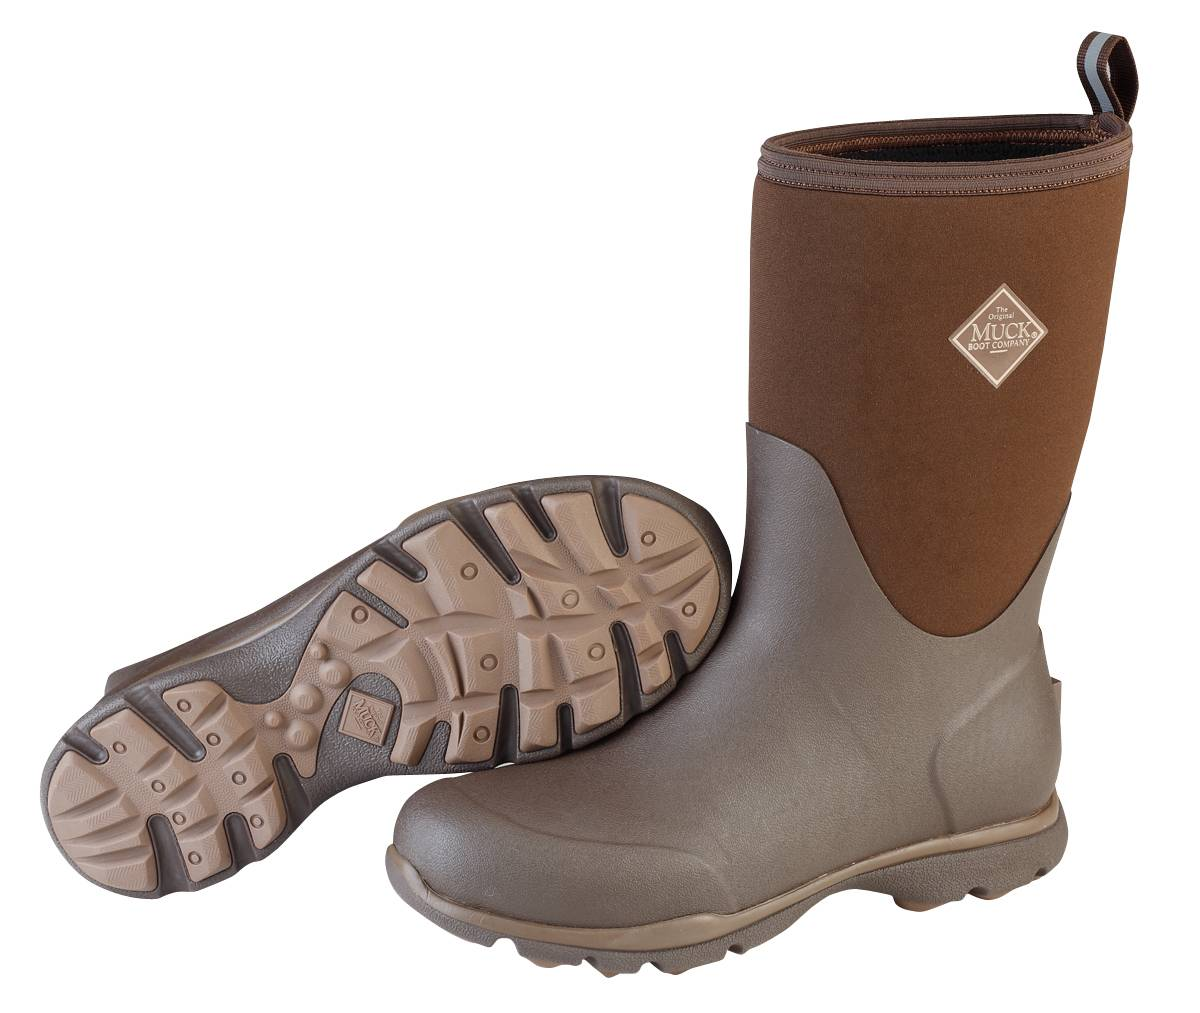 Muck Boots Zx Arctic Excursion Mid Boot - Mens - Chocolate Desert Palm